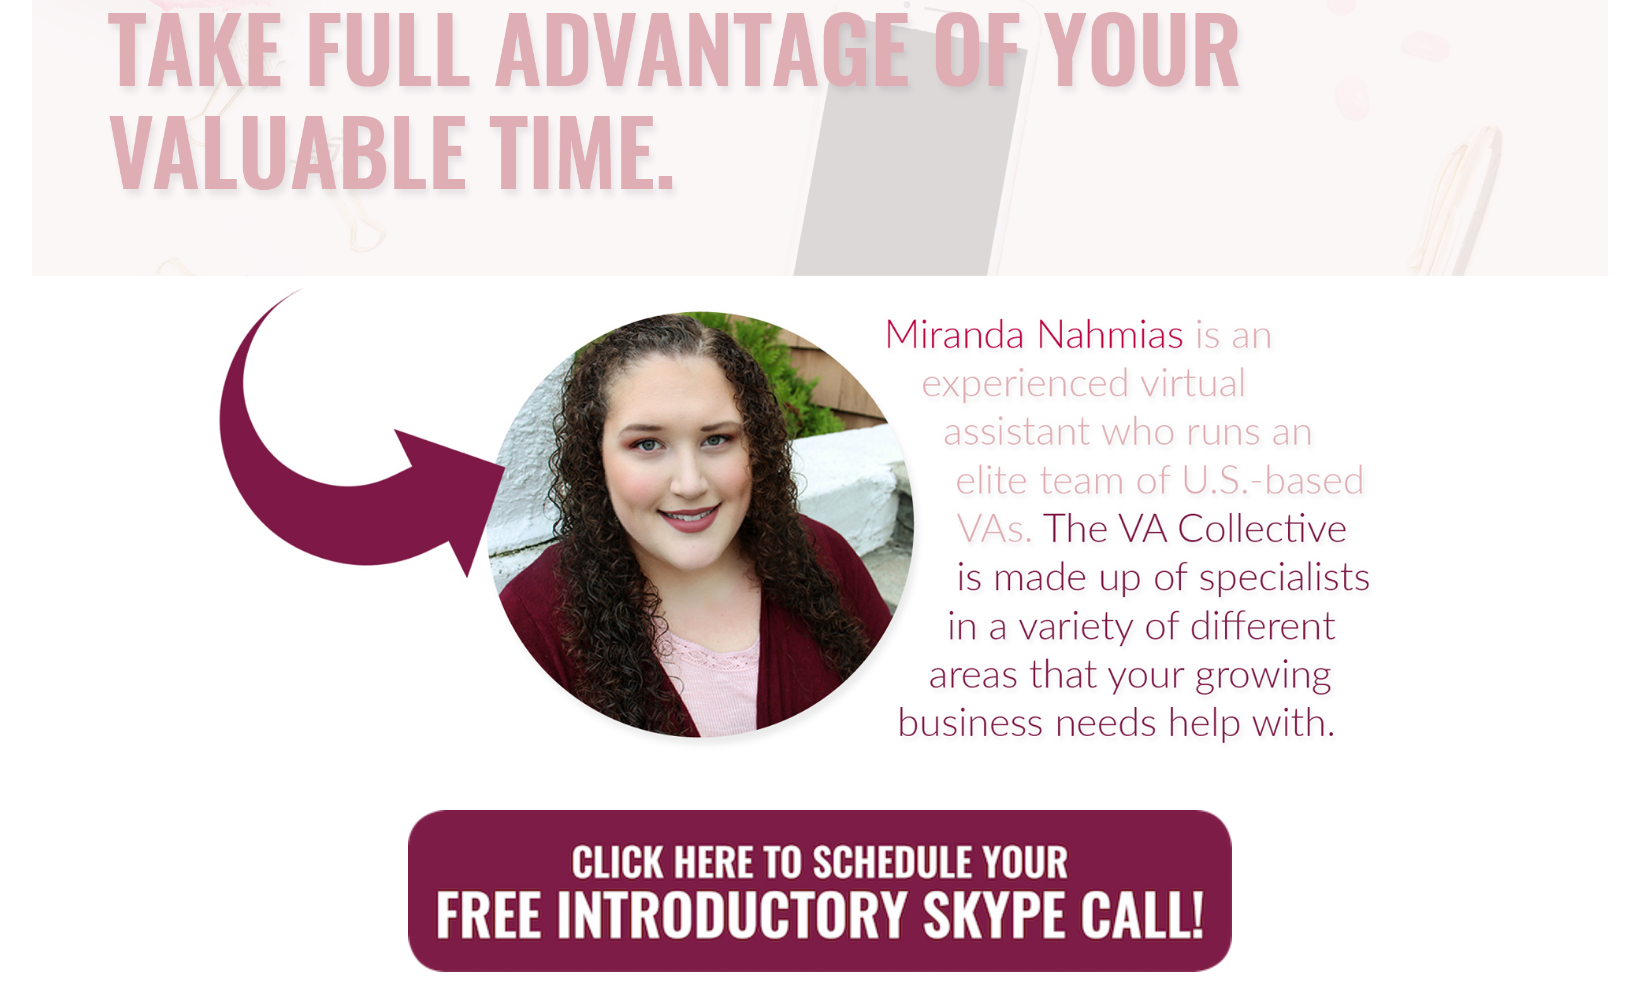 Miranda Nahmias from The VA Collective gives her clients a direct link to her calendar.